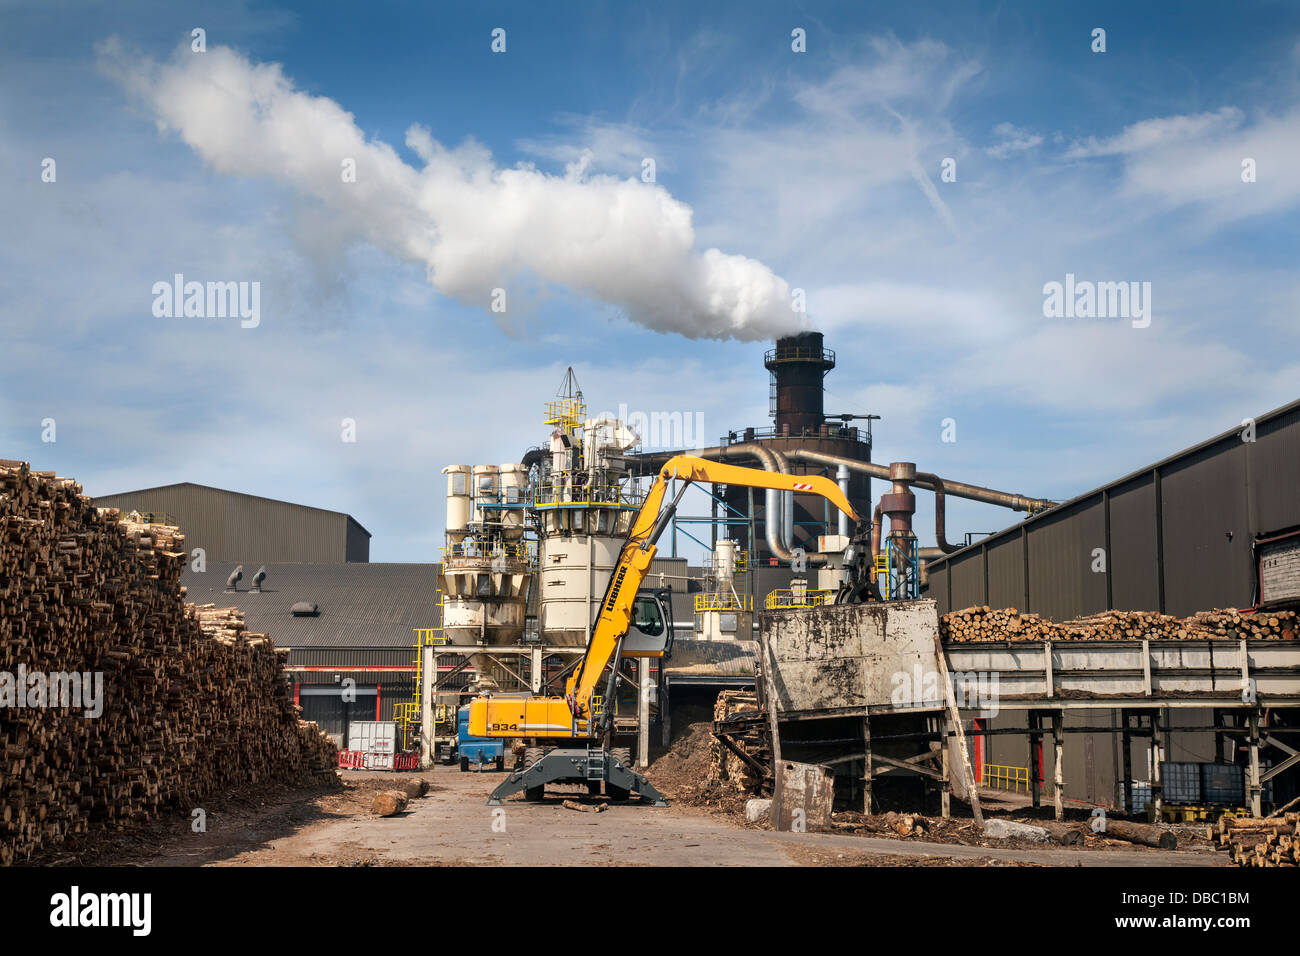 Scottish Tree Logging, Steam Emissions Bioenergy Norbord processing plant Biomass Plant Inverness, Morayhill, Dalcross, - Stock Image